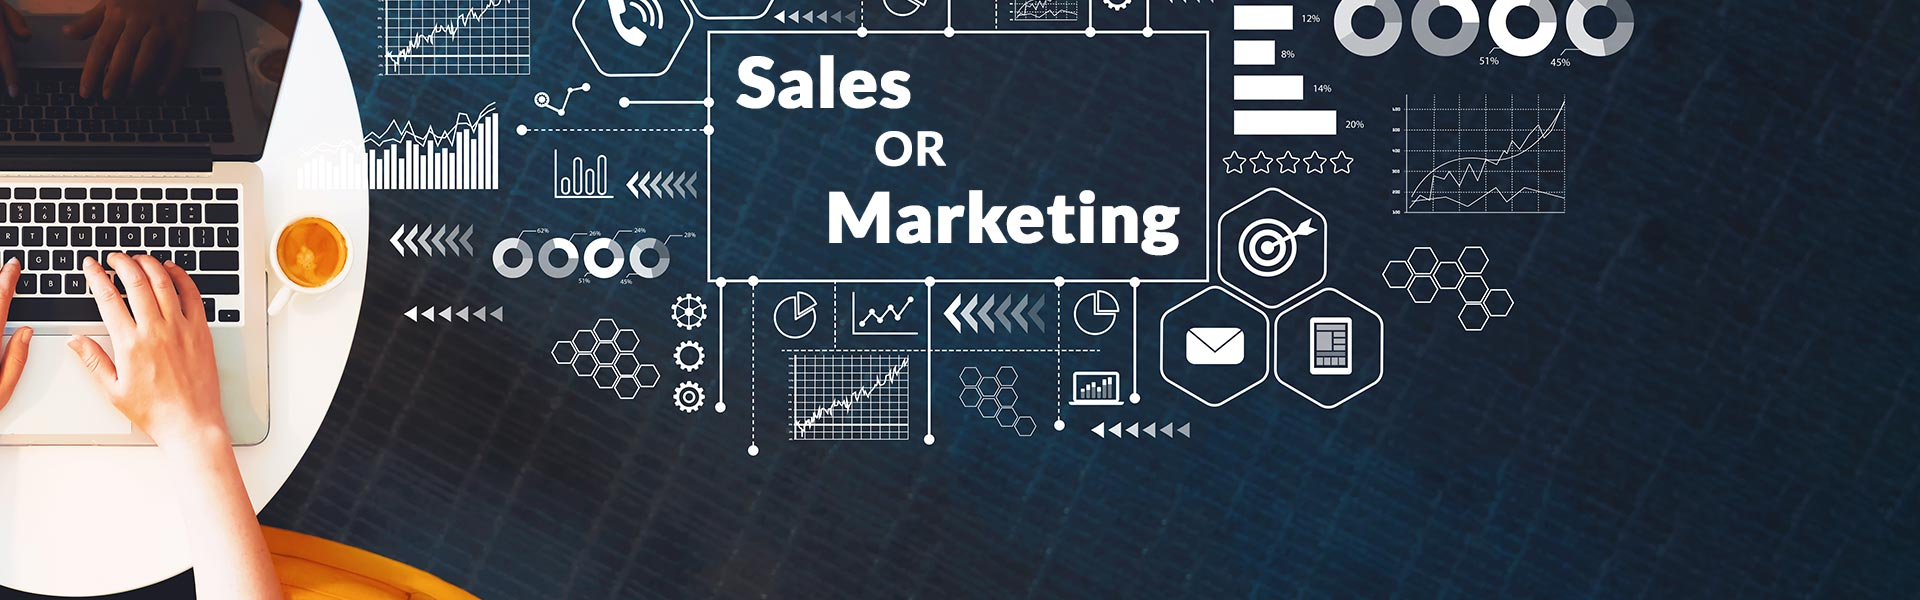 Is lead generation sales or marketing?